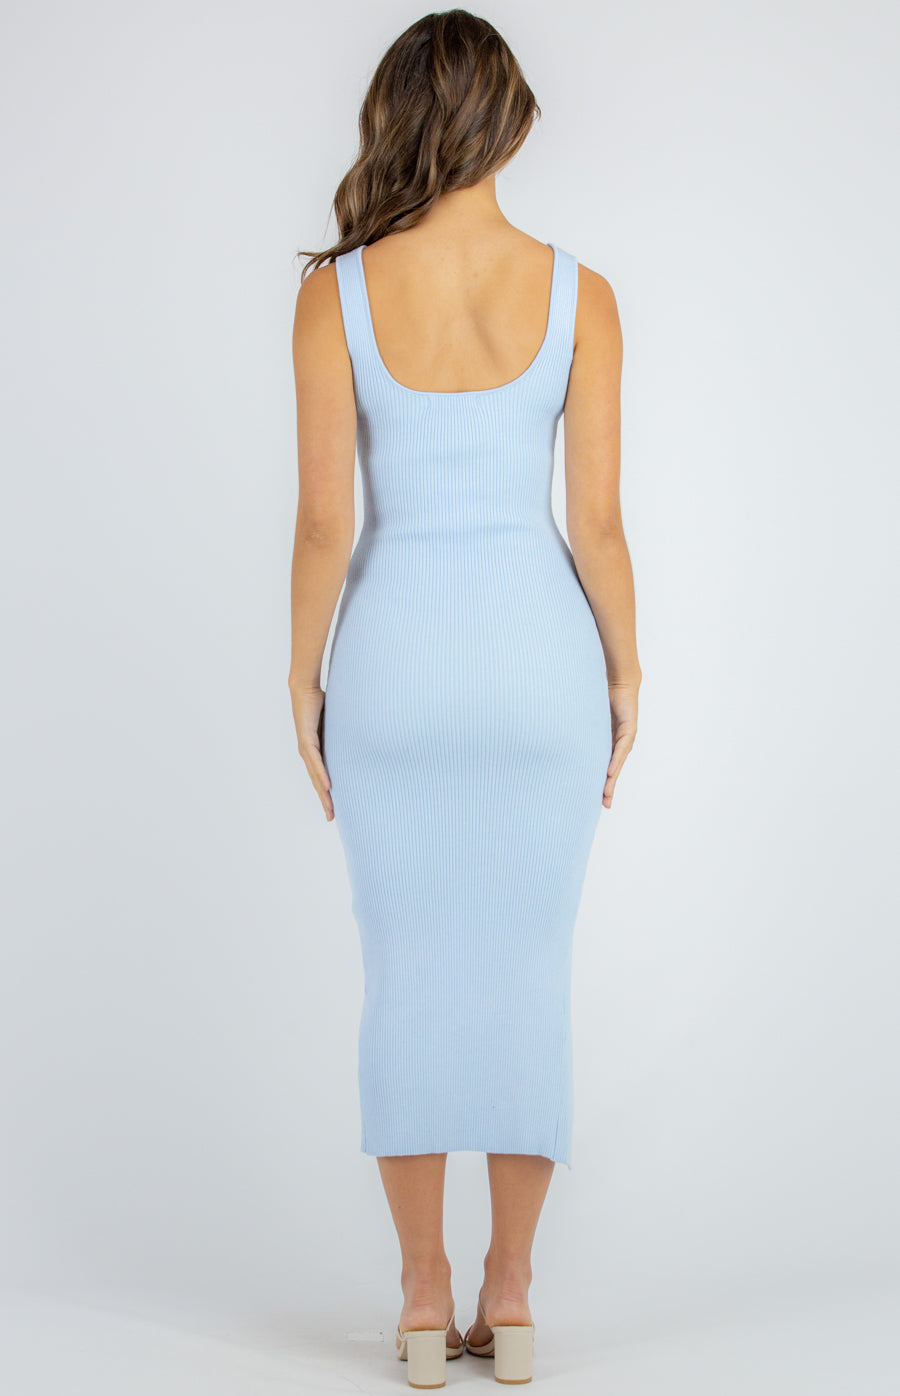 Baby blue sleeveless ribbed knit midi dress with square neckline and front leg split.